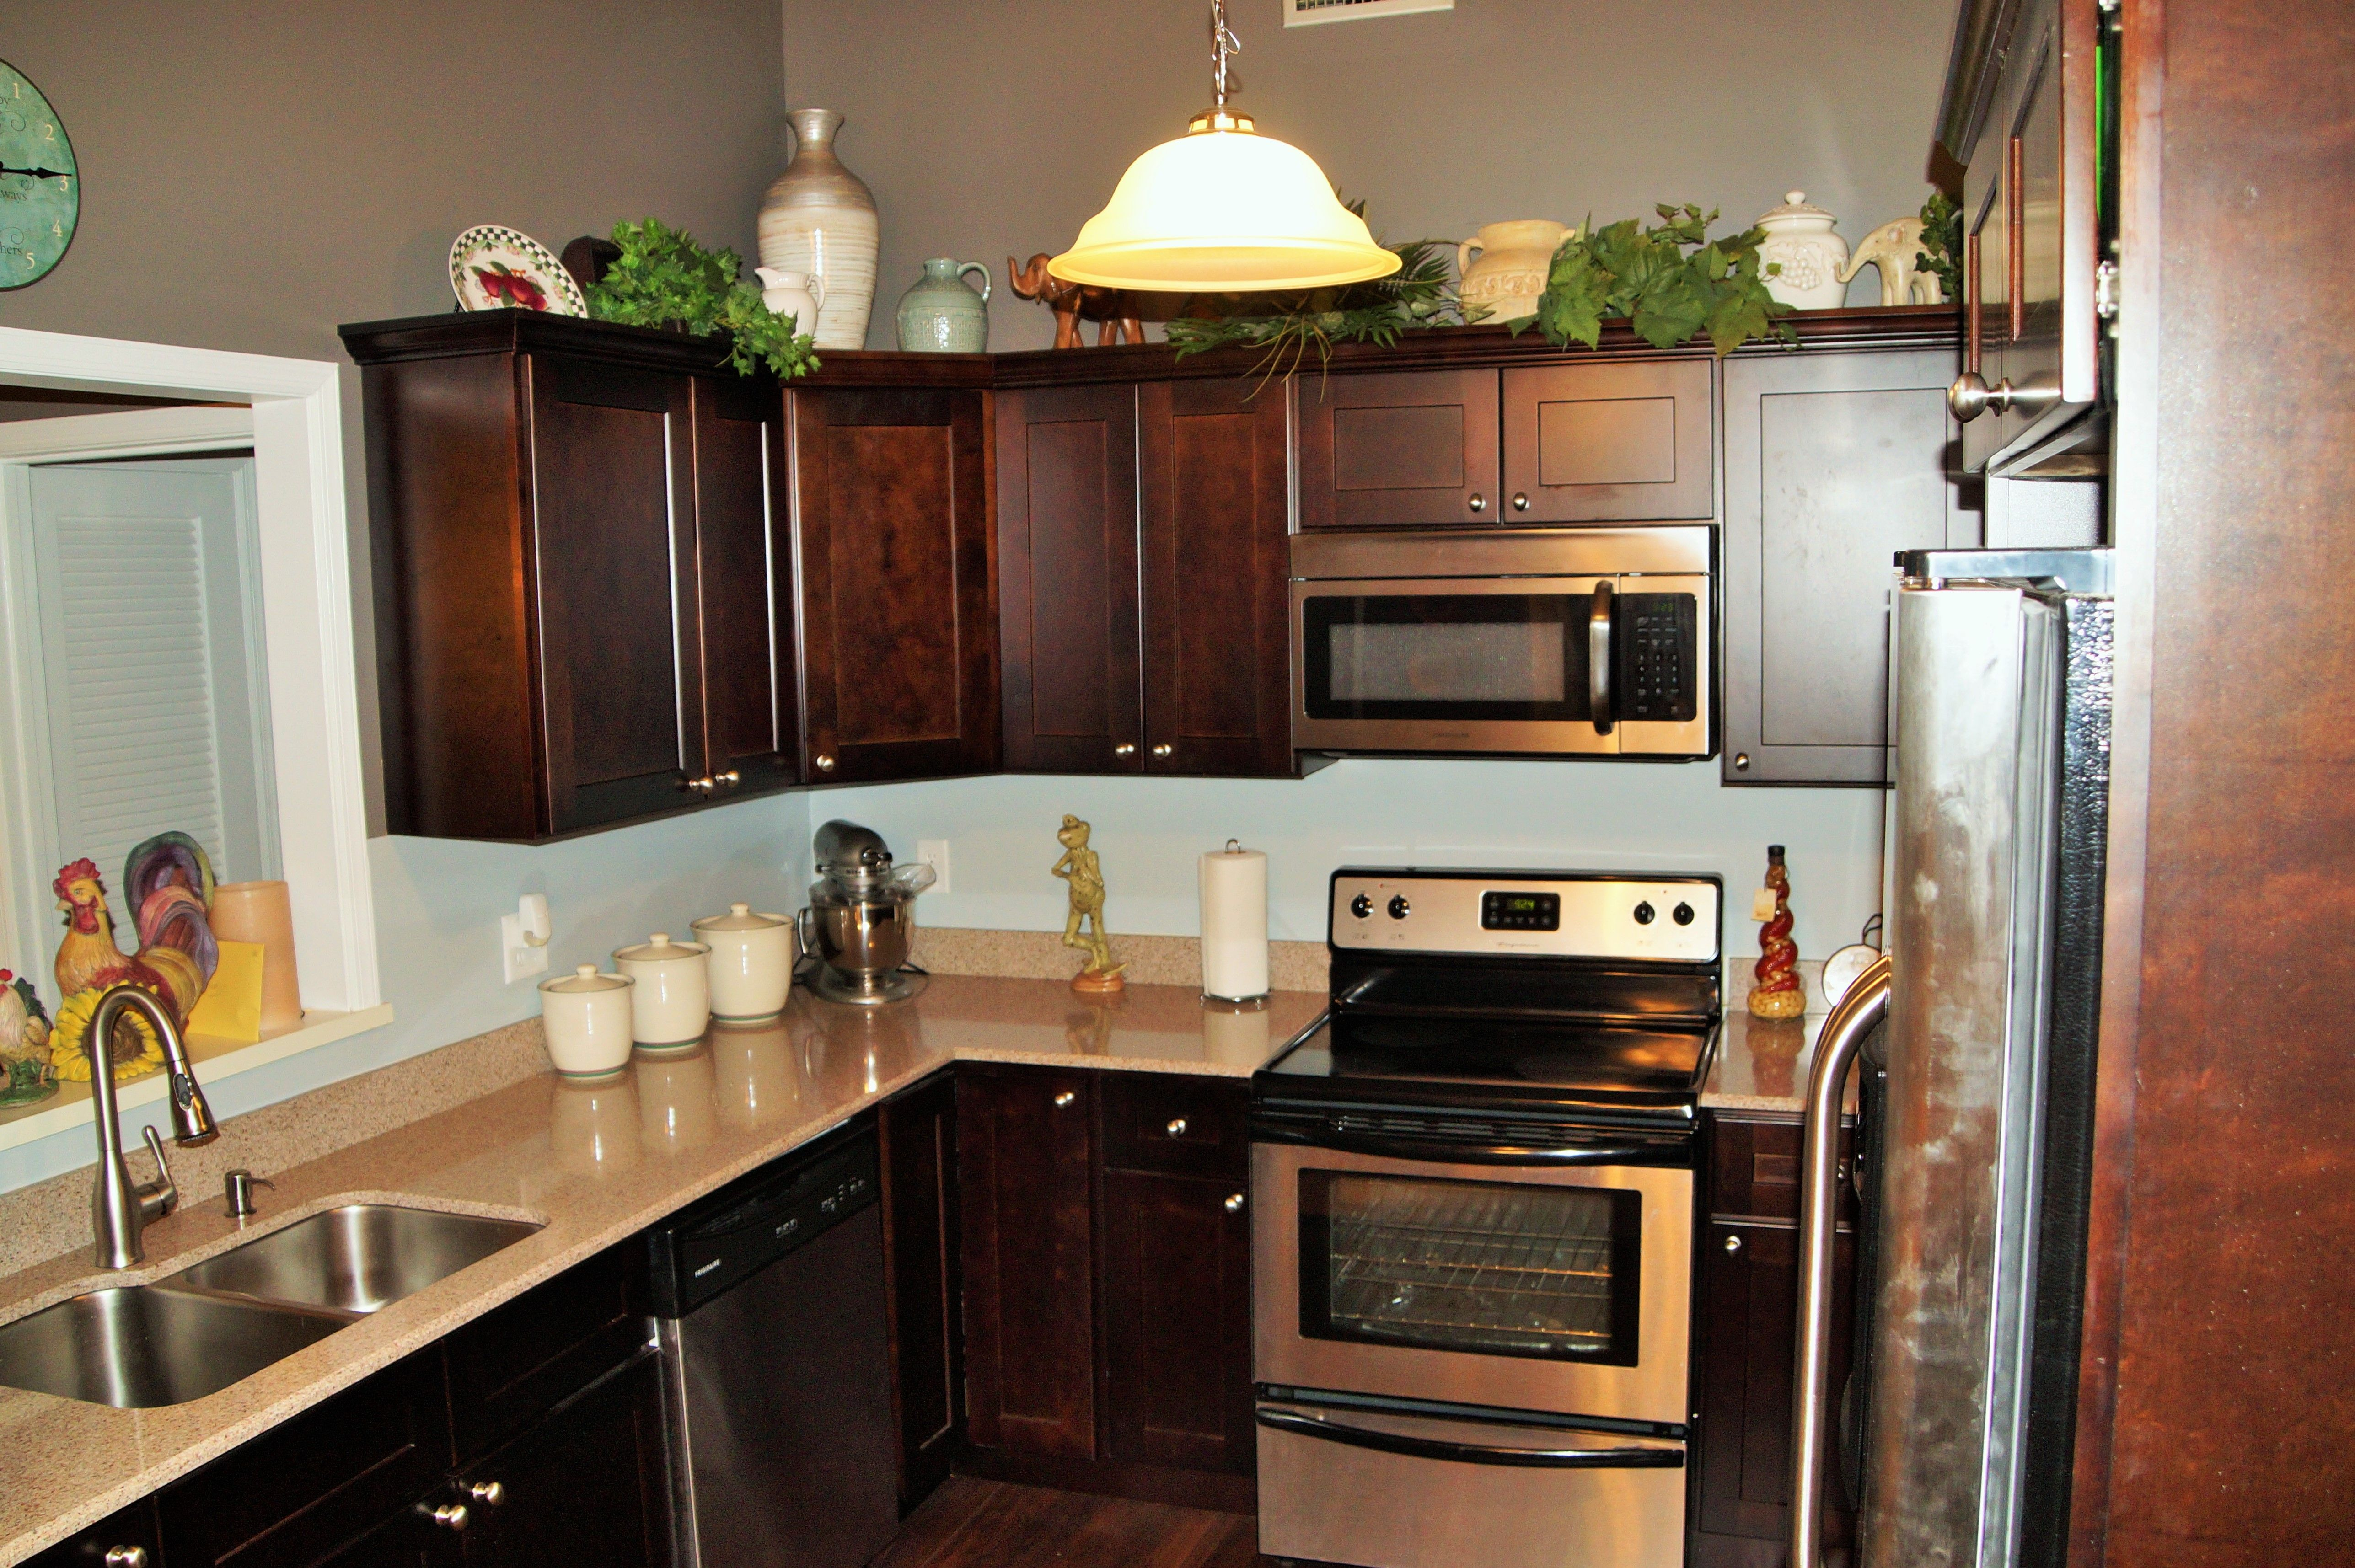 Kitchen Remodel By Christy B Of Phenix City Al This Was Our 2nd